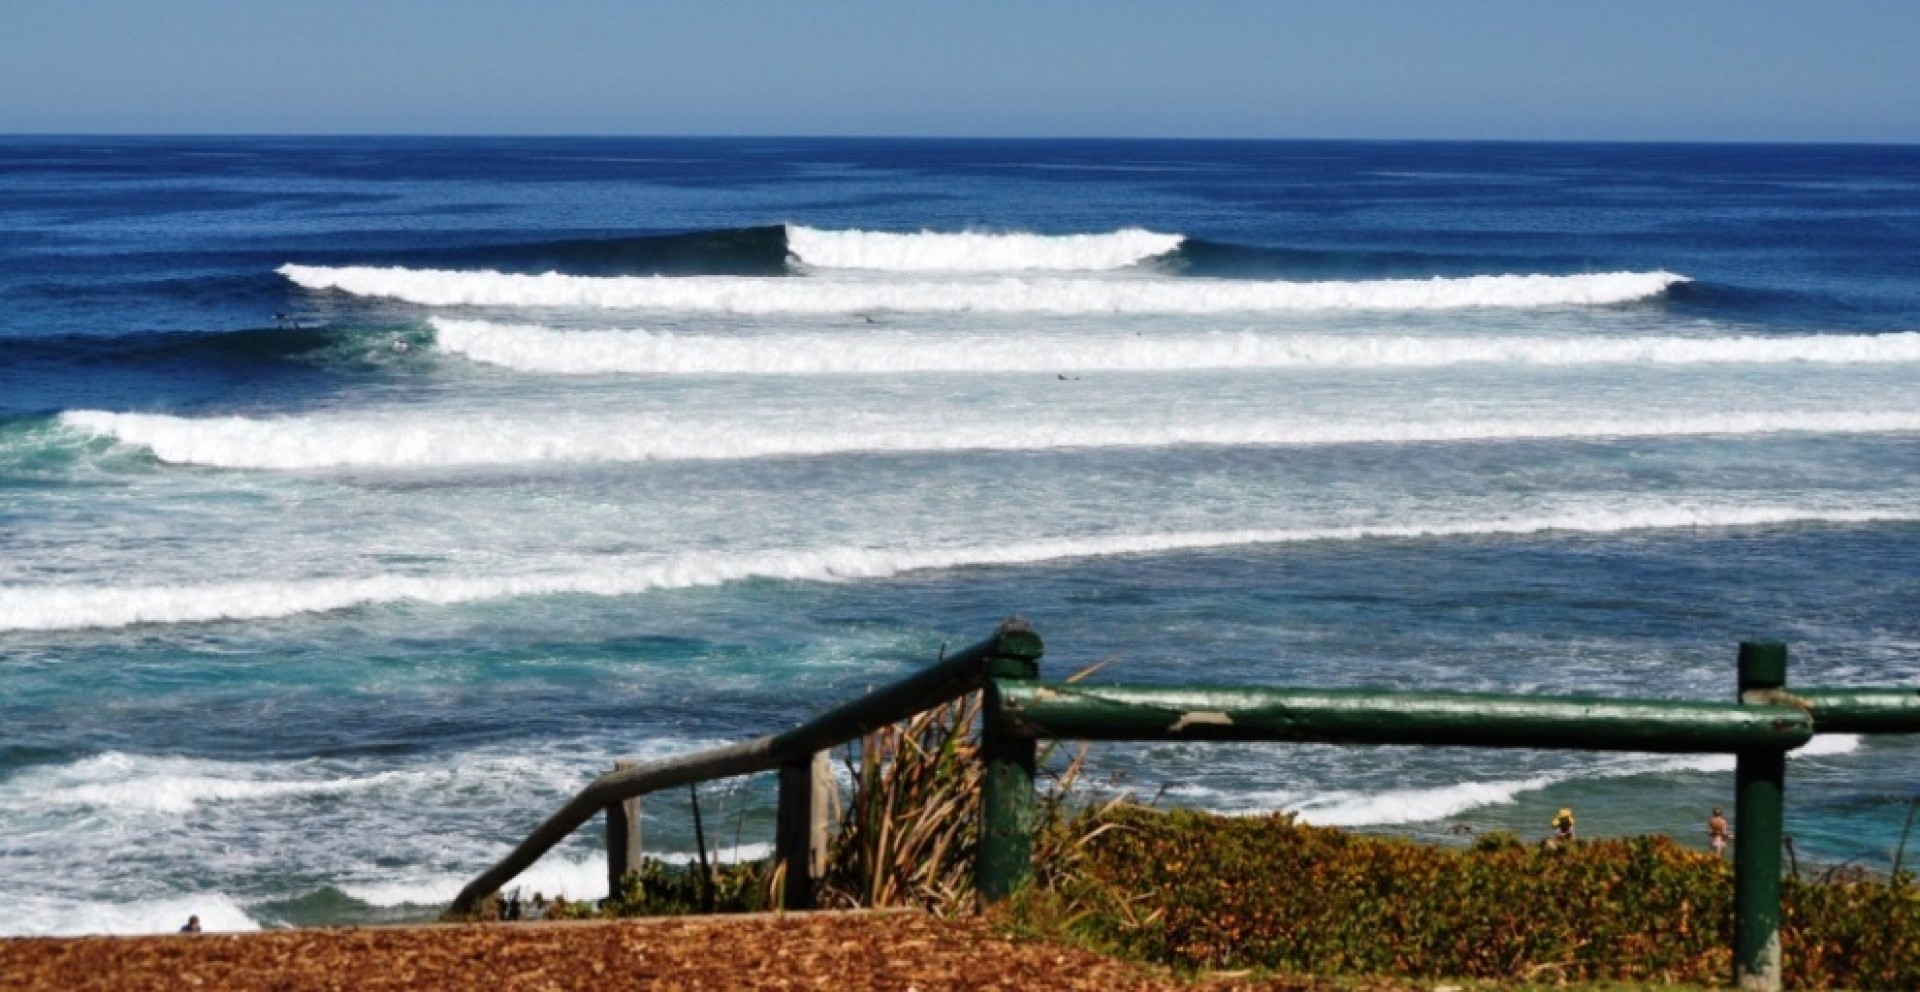 Andy's photo of Margaret River